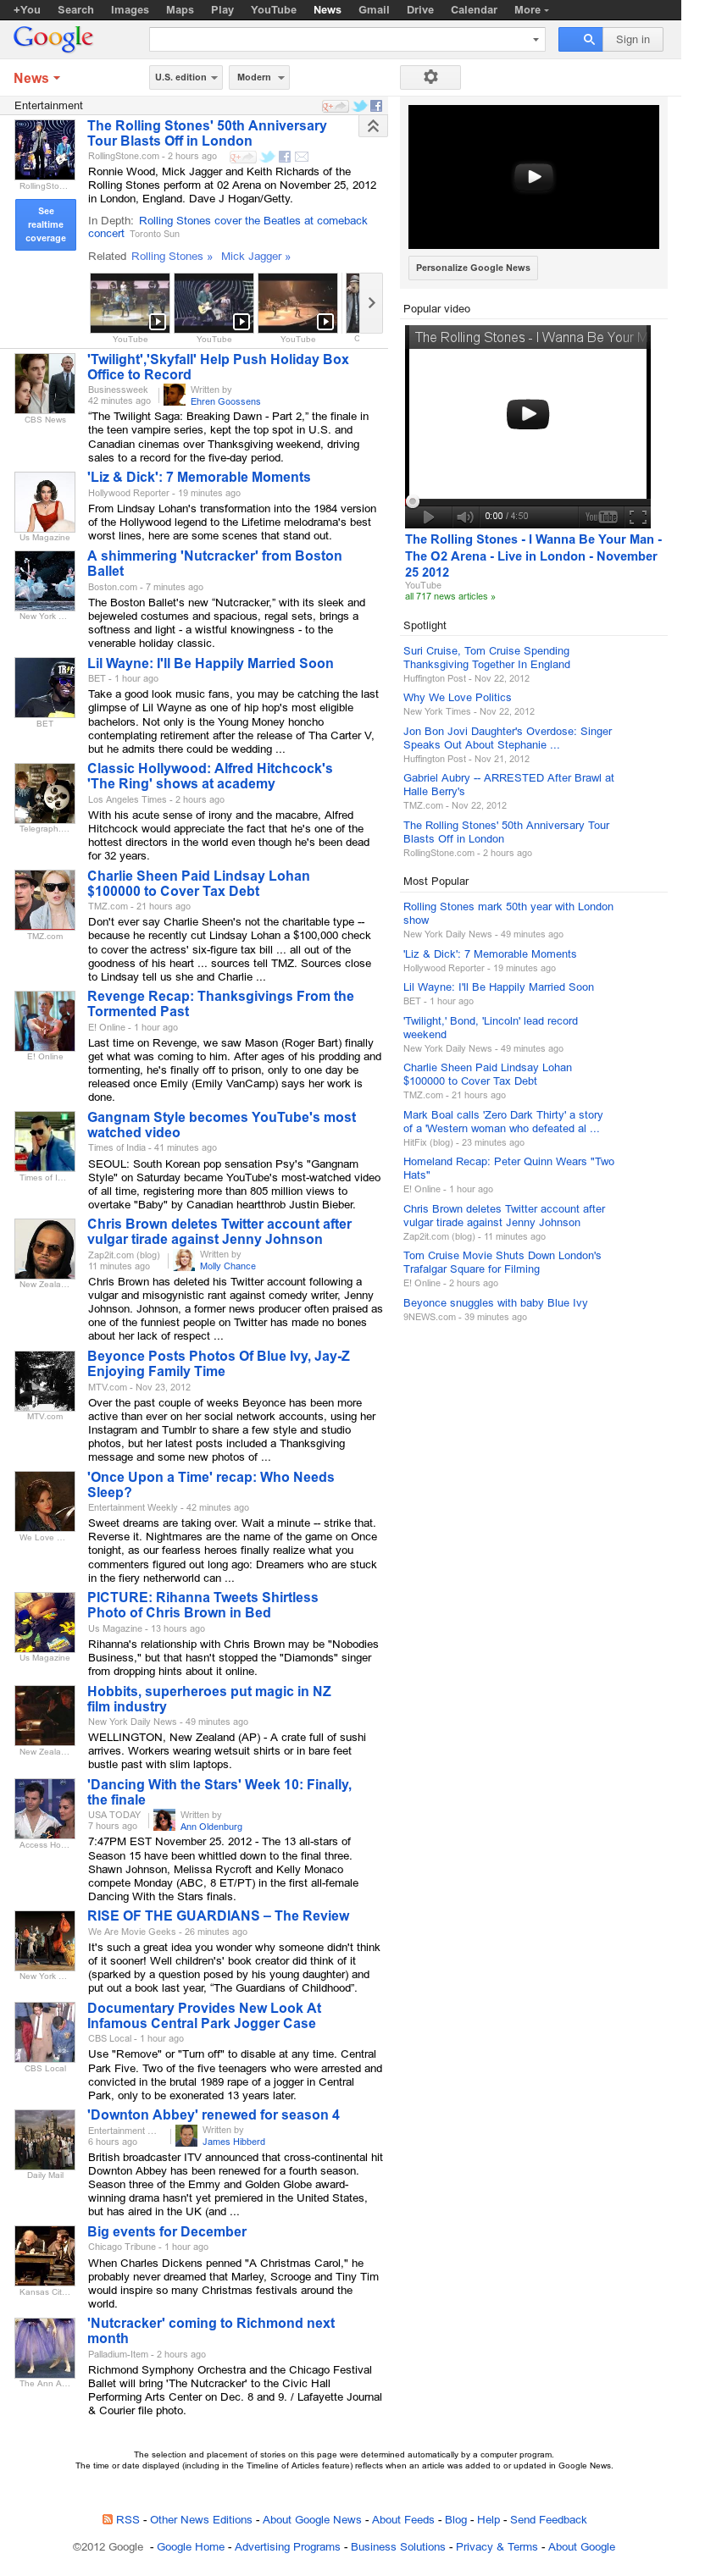 Google News: Entertainment at Monday Nov. 26, 2012, 6:09 a.m. UTC